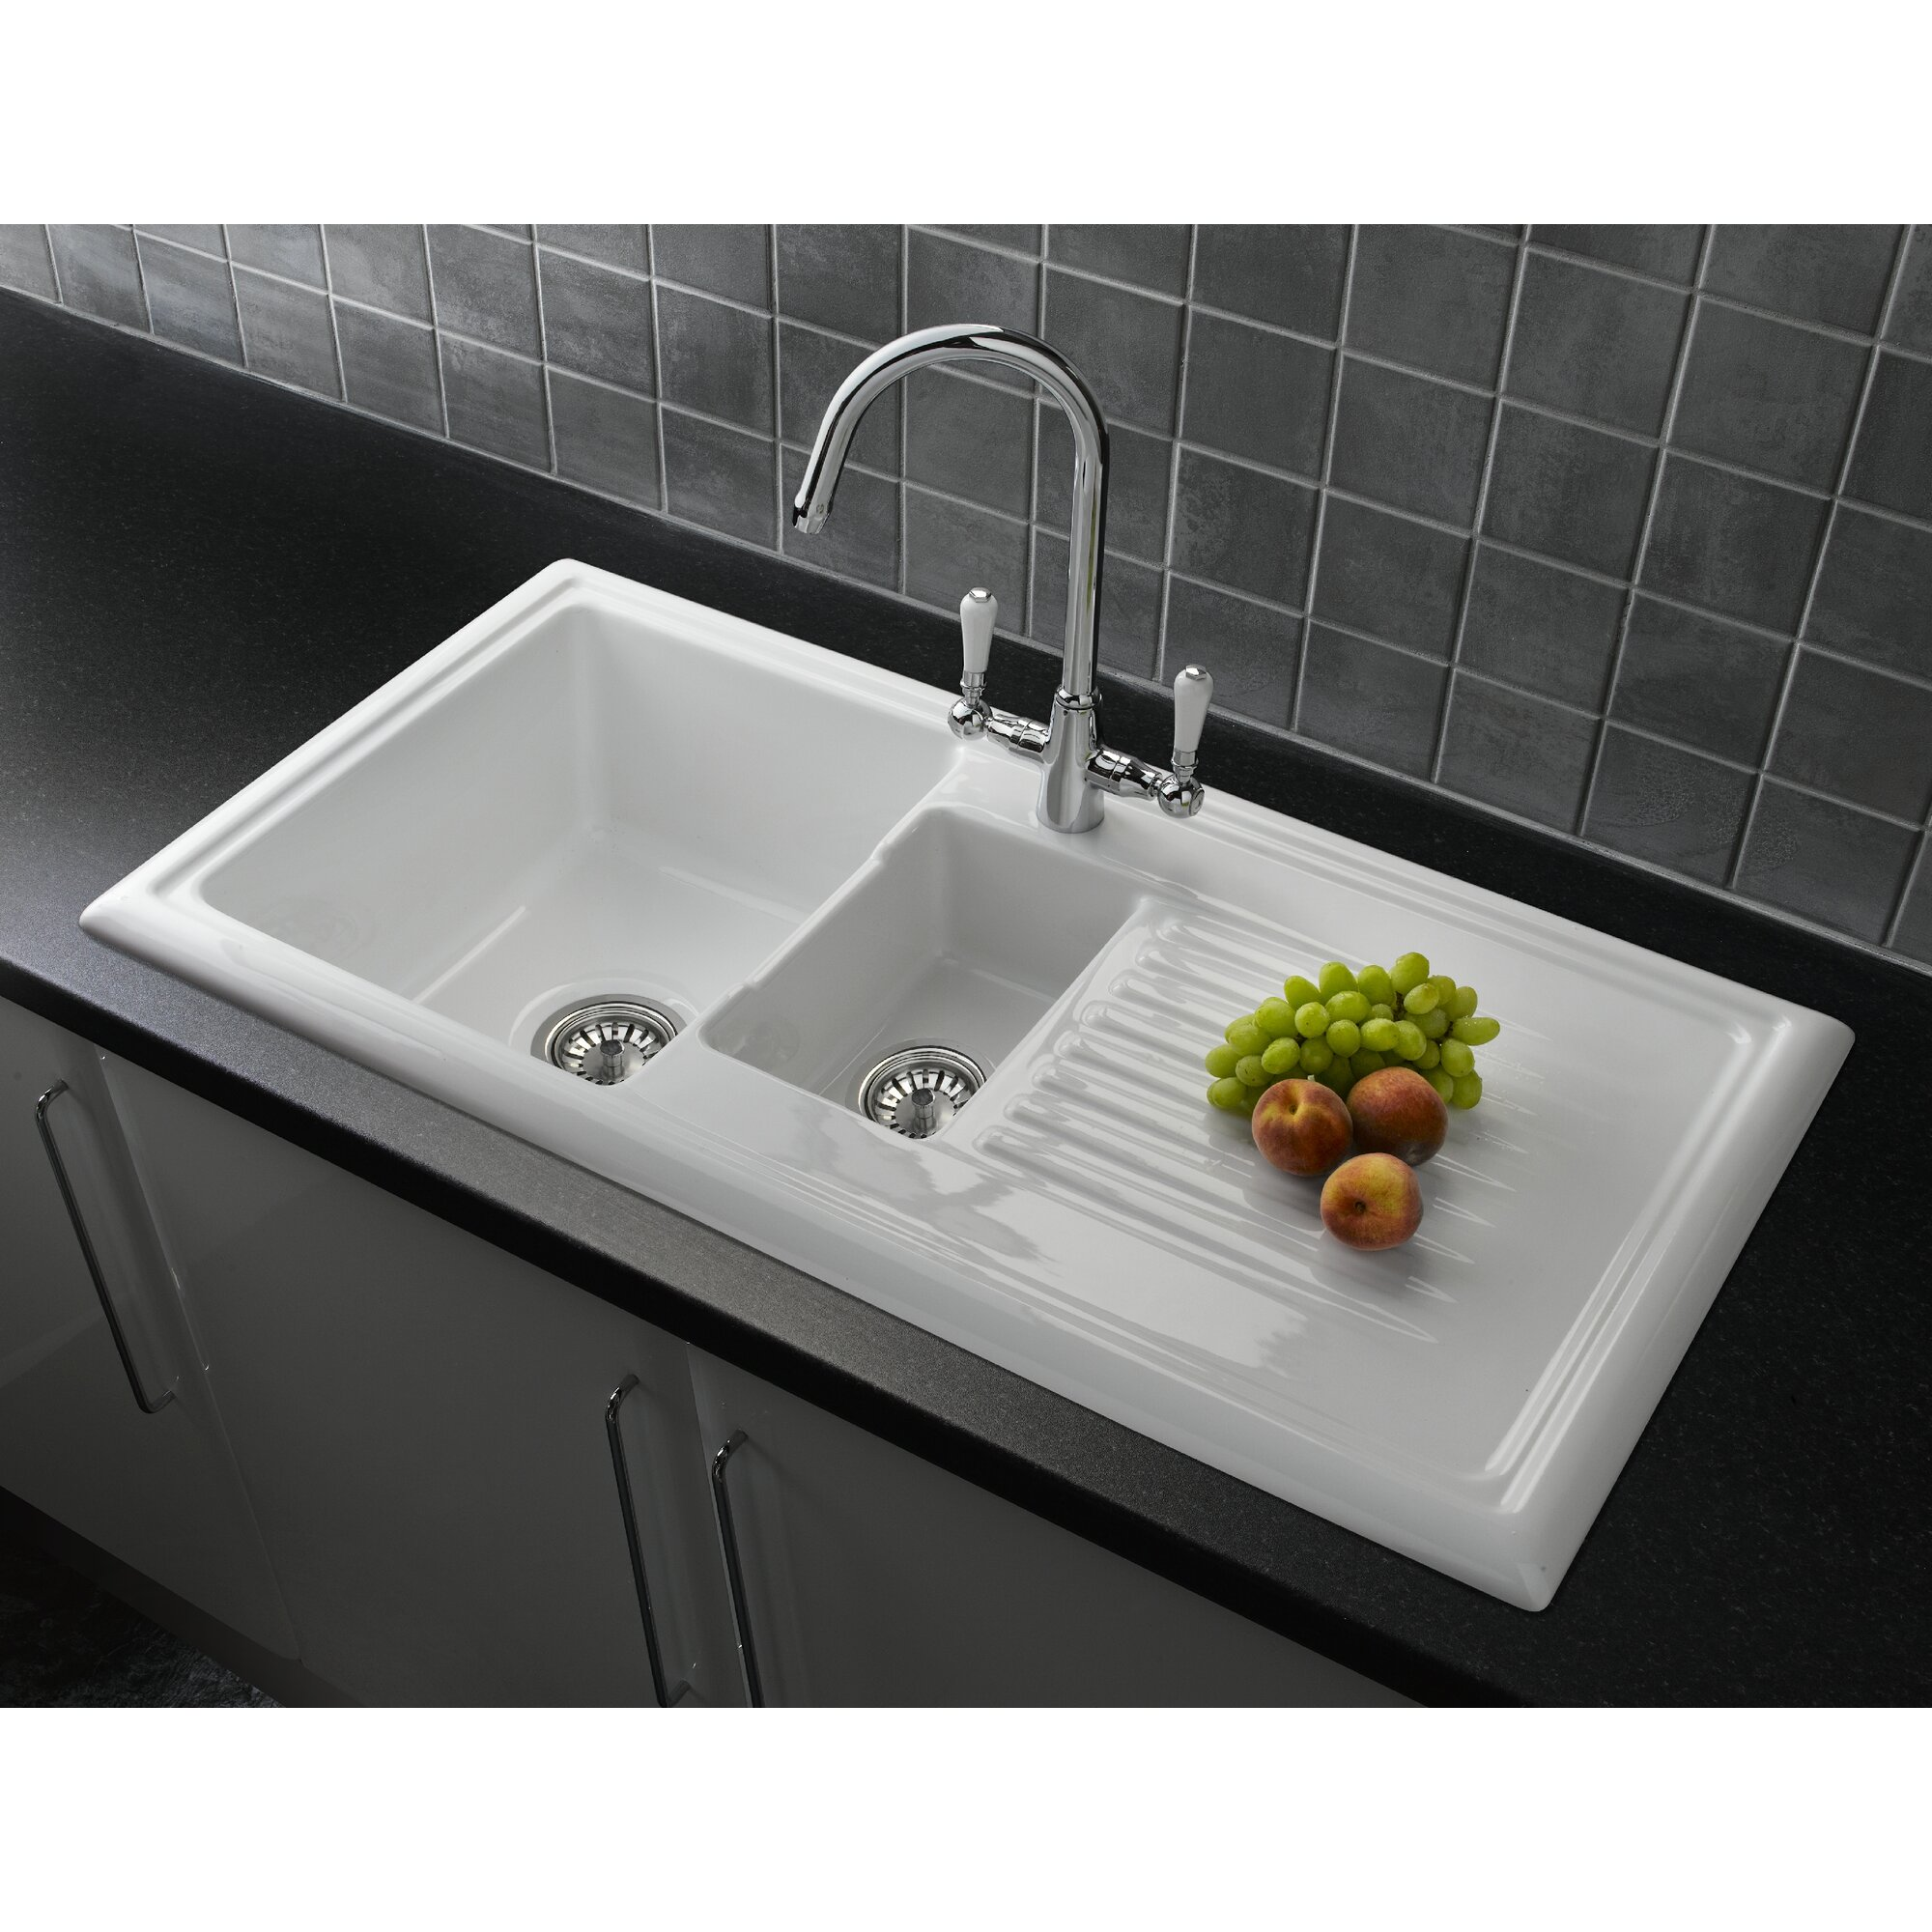 116 cm stainless steel double bowl single drainer inset sink right - 101cm X 52 5cm Bowl Inset Kitchen Sink With Waste